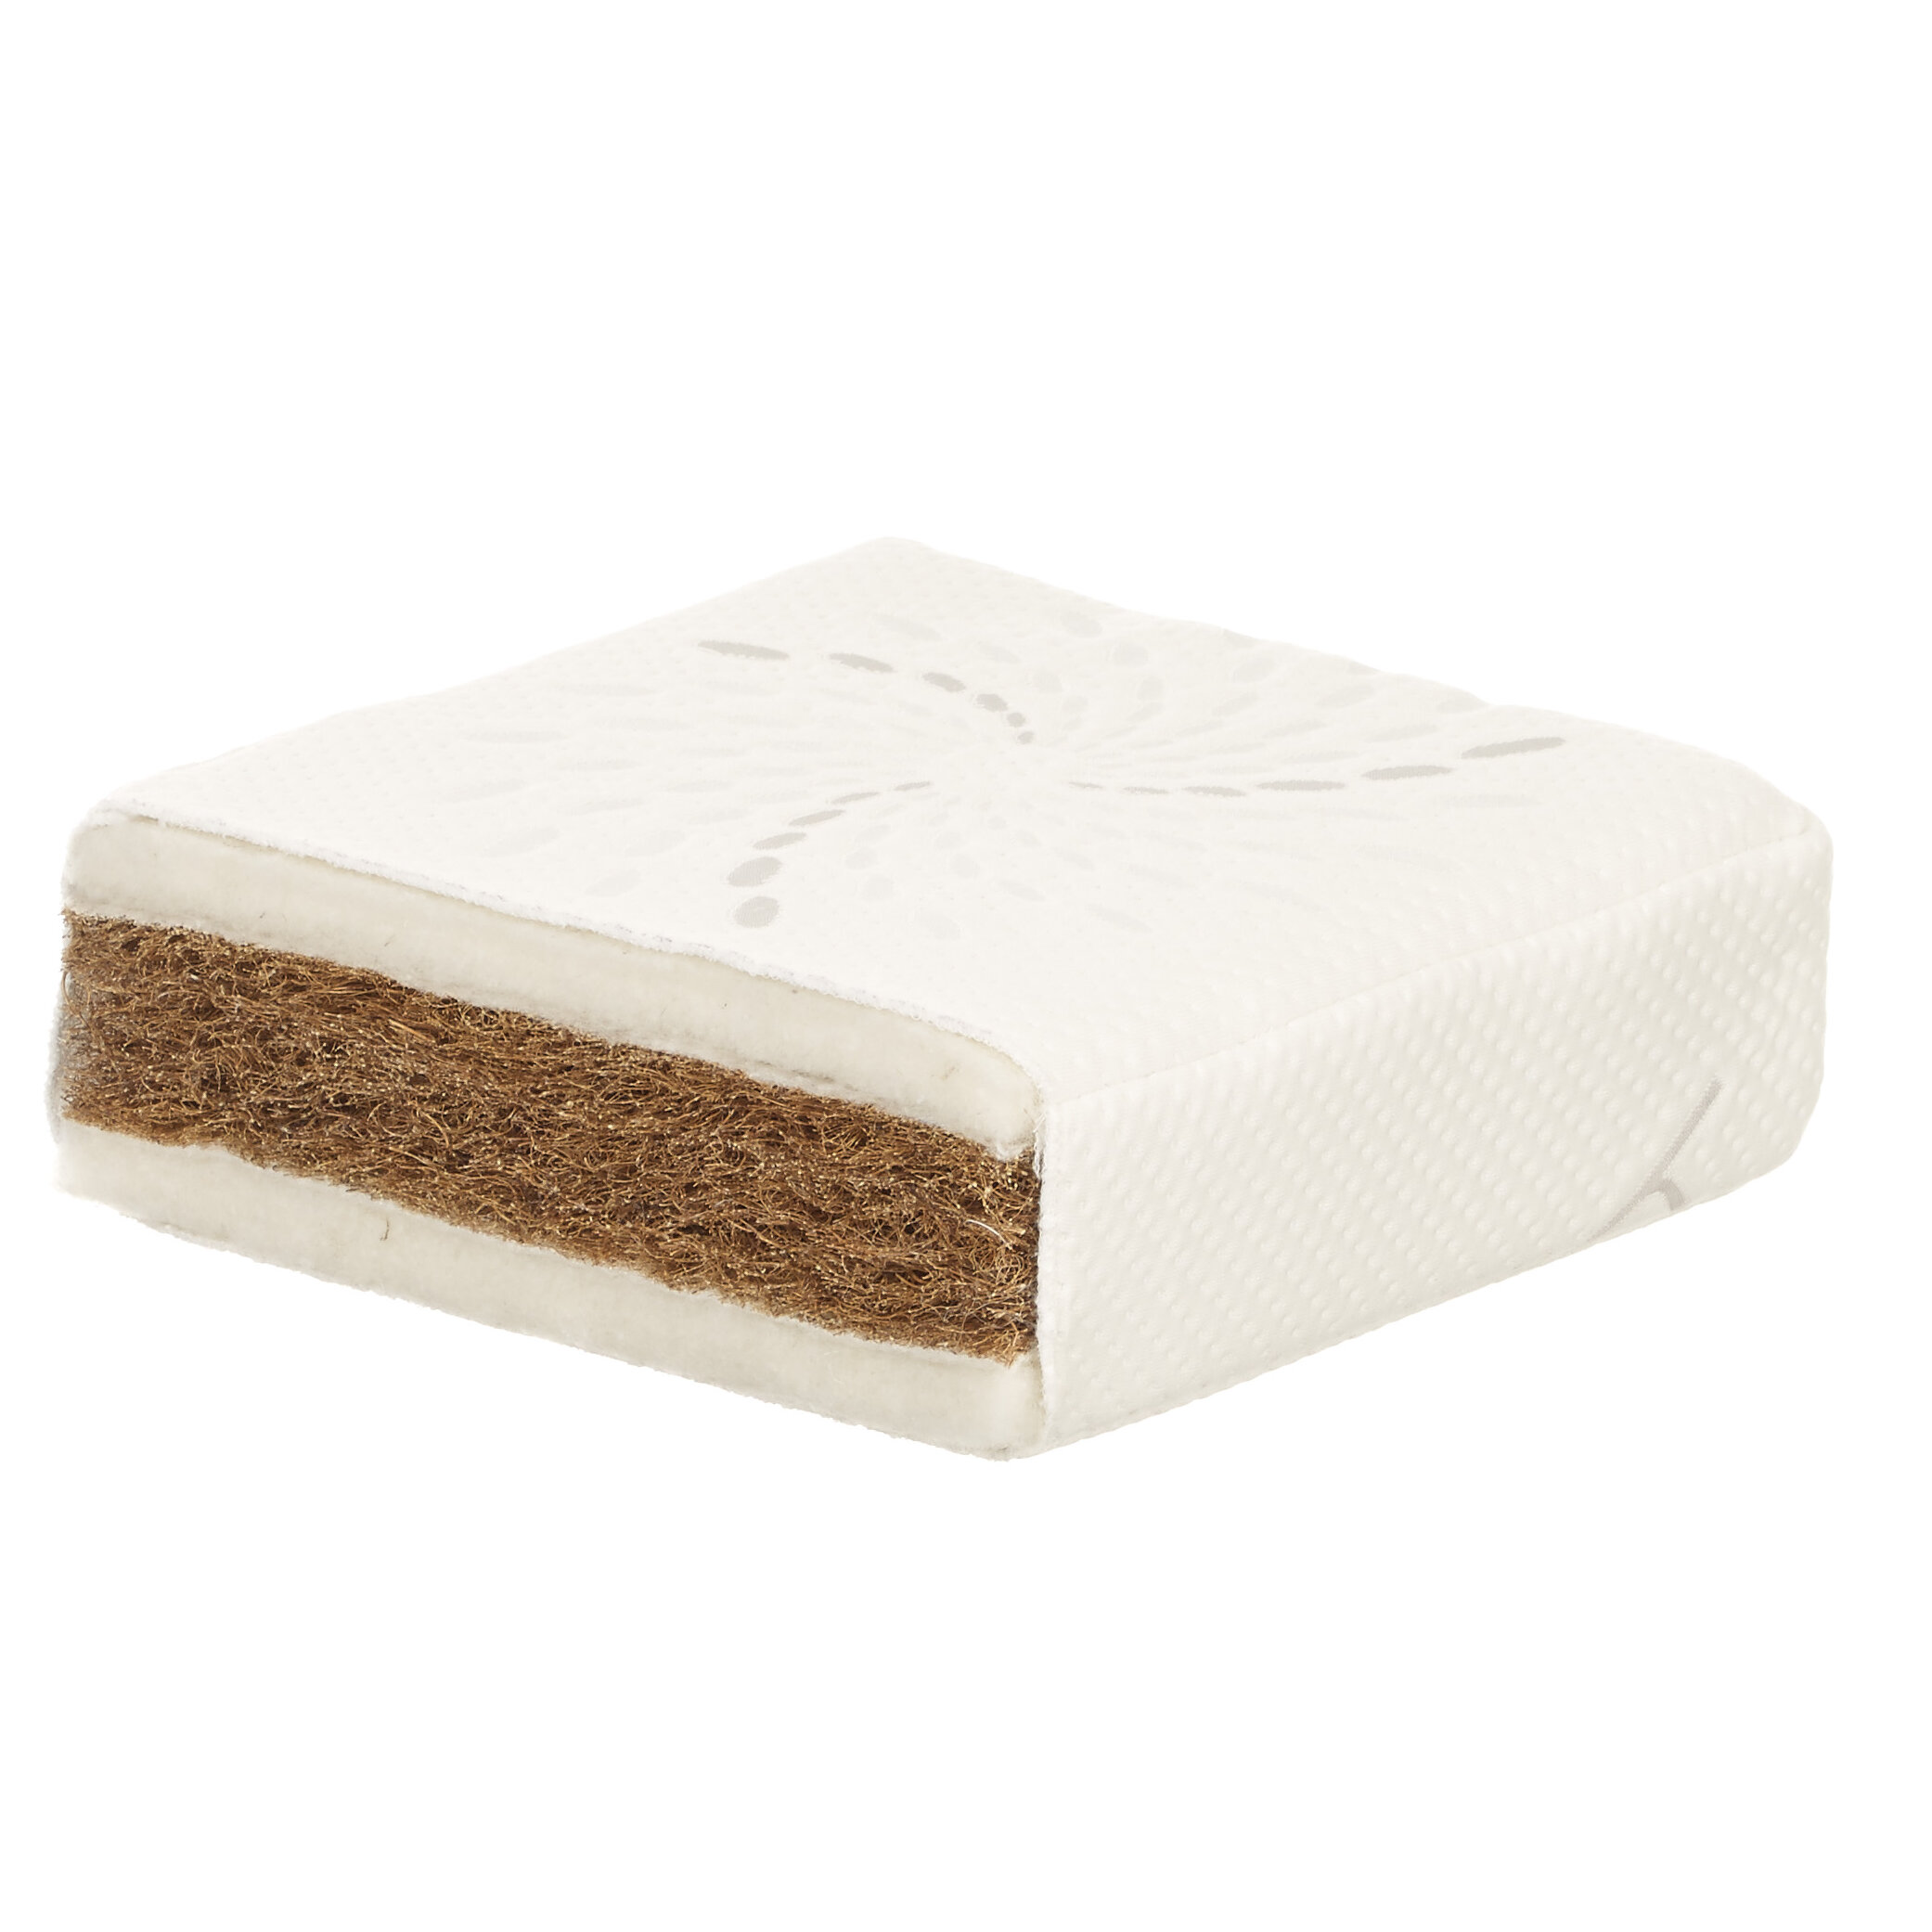 moses front view web cover organic nature basket baby wool mattress